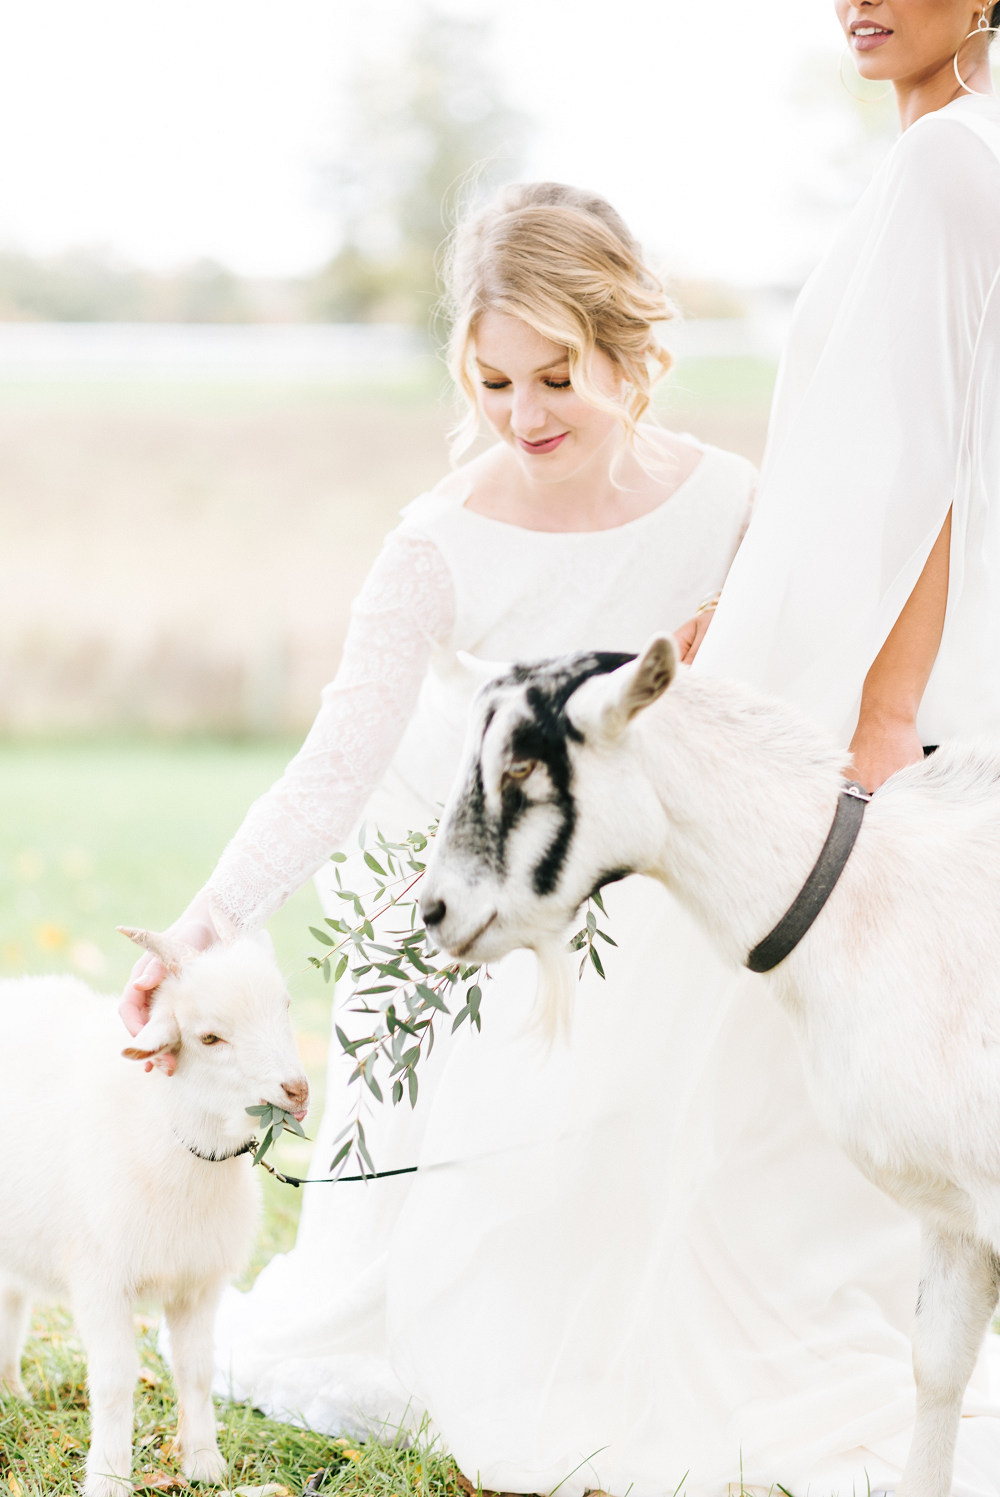 Lush Greenery Wedding Inspired Styled Shoot at Cornman Farms Bride with Goat